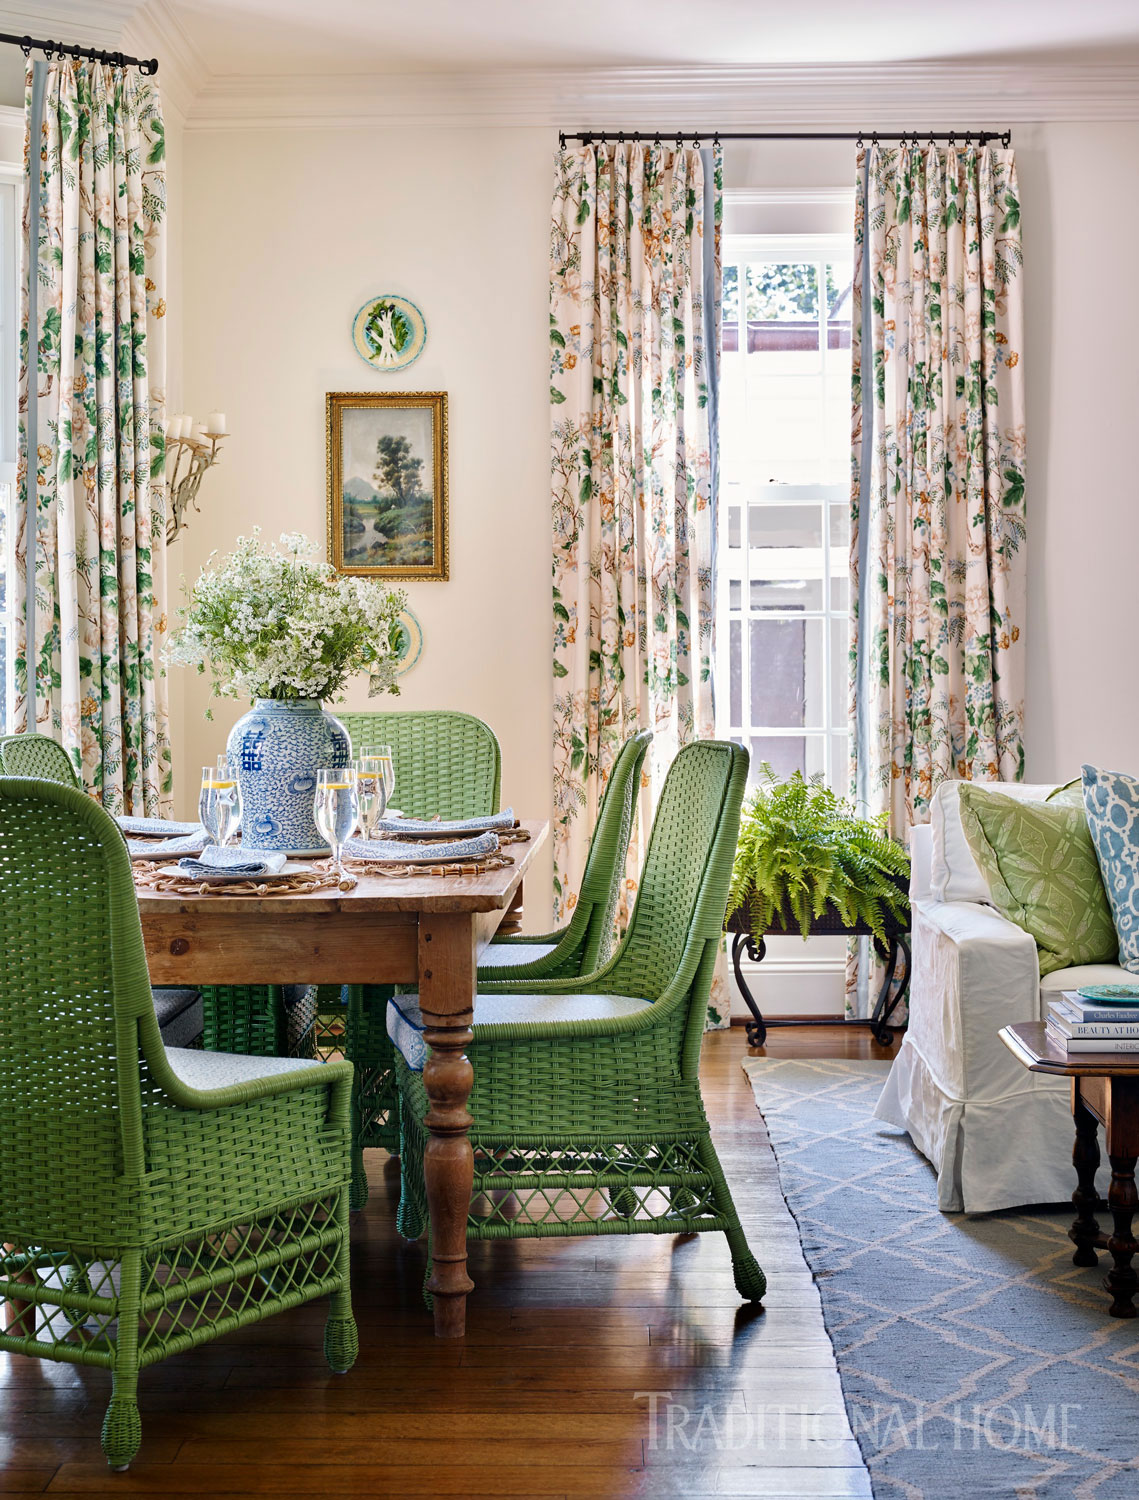 The springy palette continues in the breakfast room where verdant green dining chairs pull up to a rustic table.